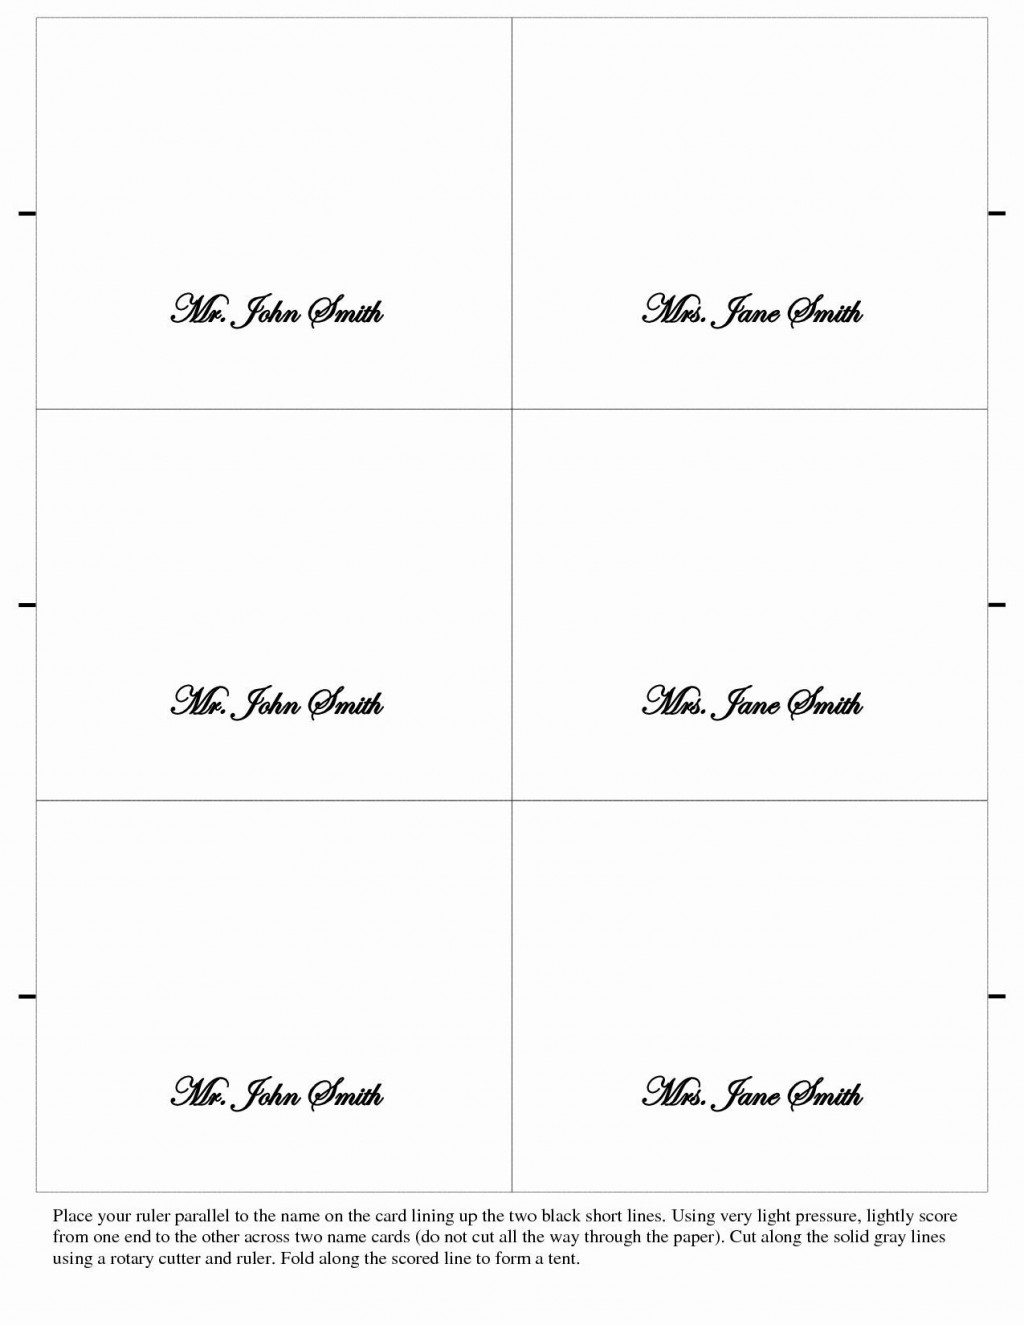 006 Surprising Place Card Template Word High Resolution  Free Name Folding Microsoft TableLarge